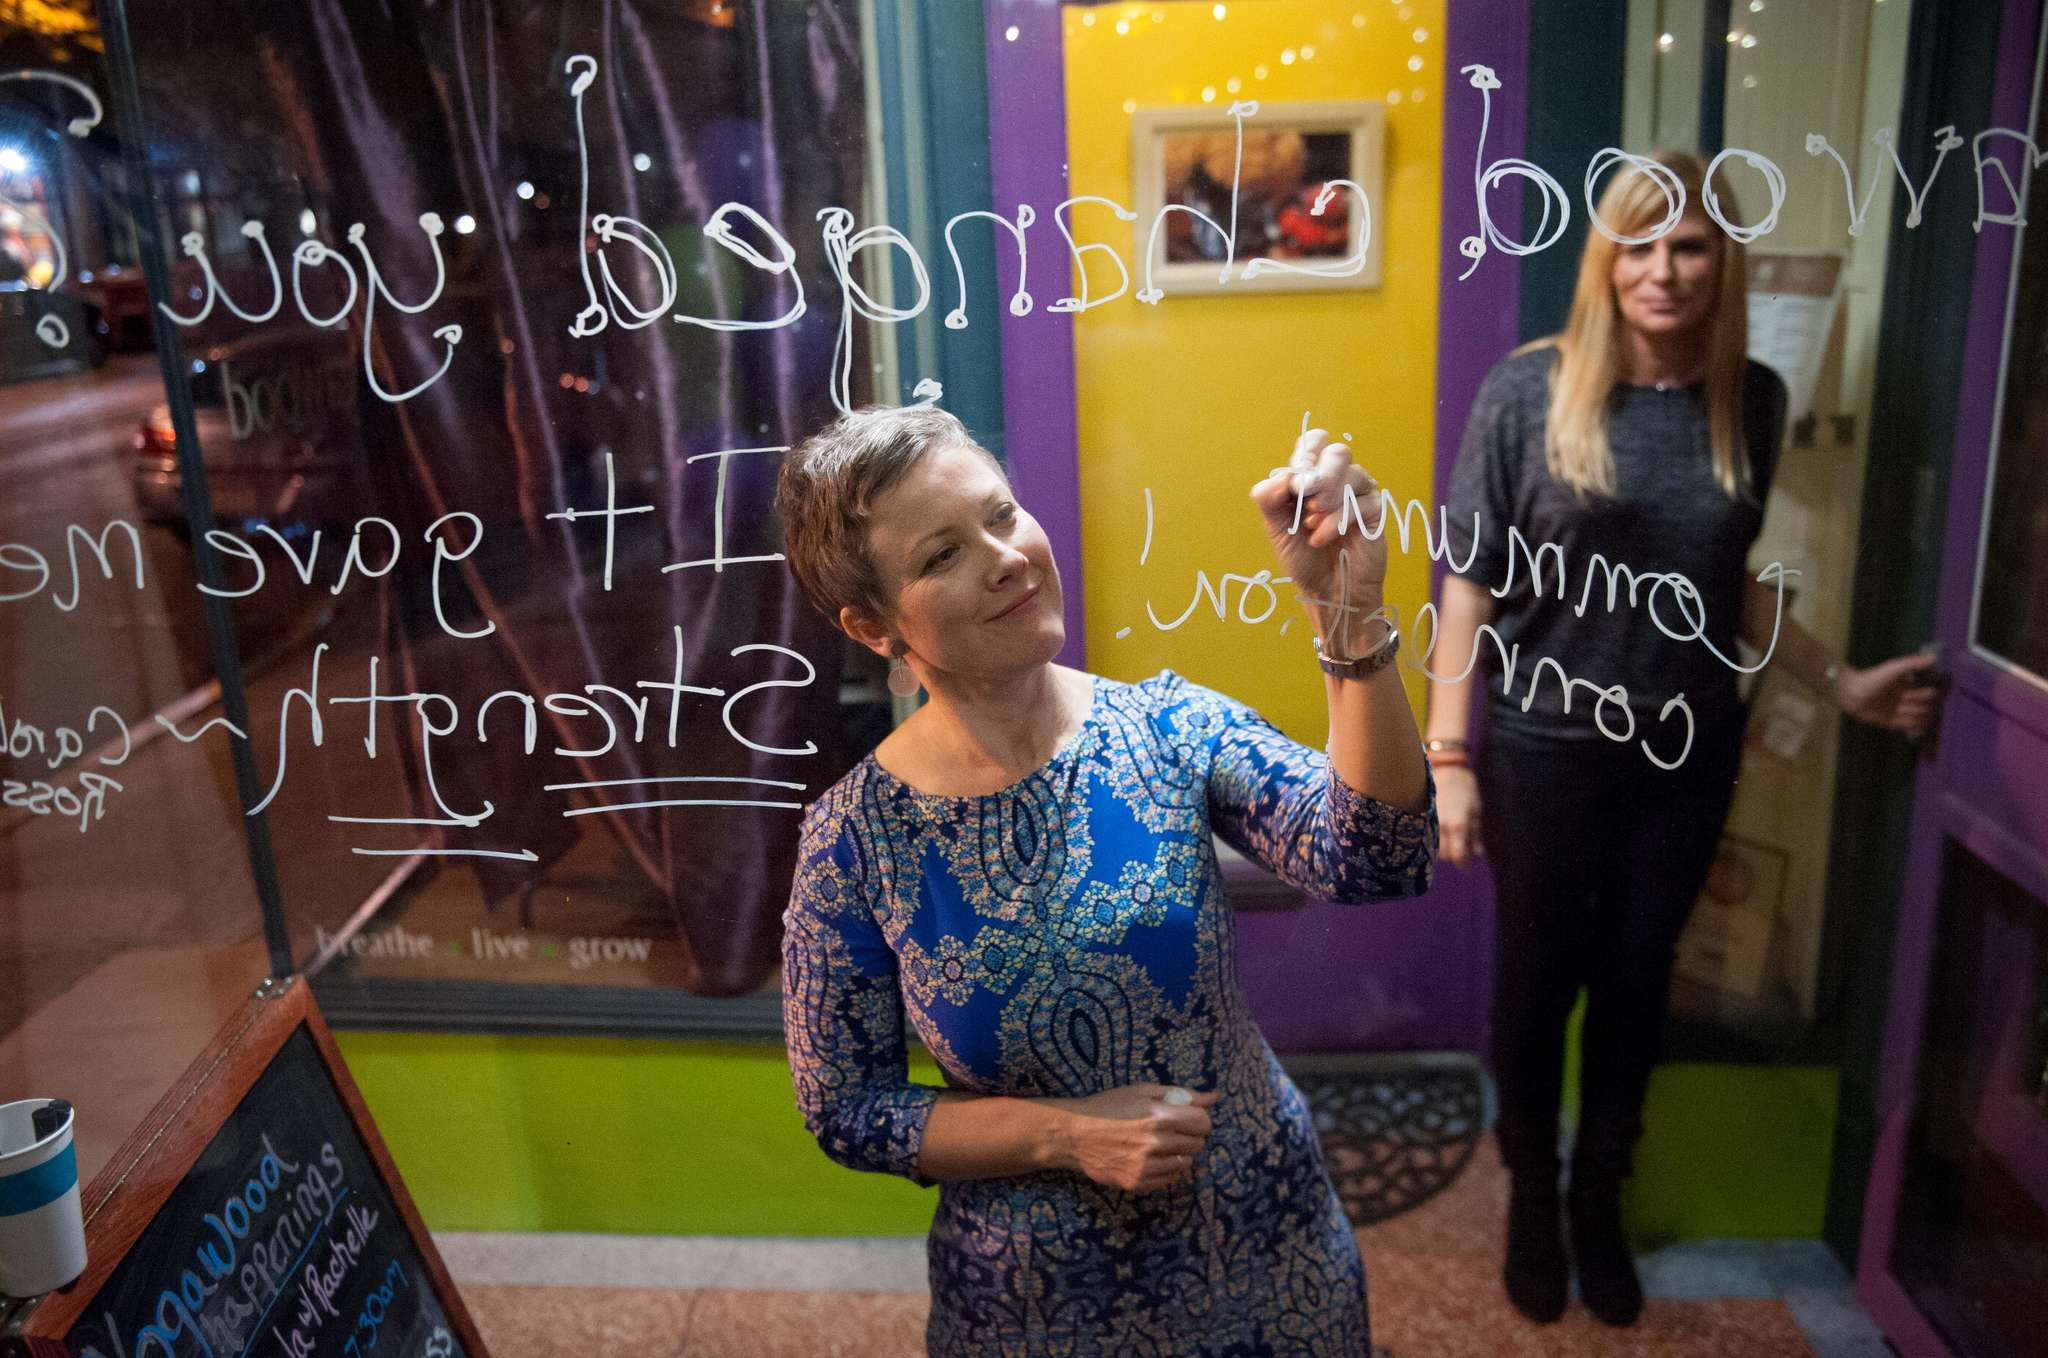 Yogawood owner Beth Filla writes on the studio´s window about what the discipline has given her during a party to celebrate Yogawood´s 10th anniversary. She considered canceling after the election last week.